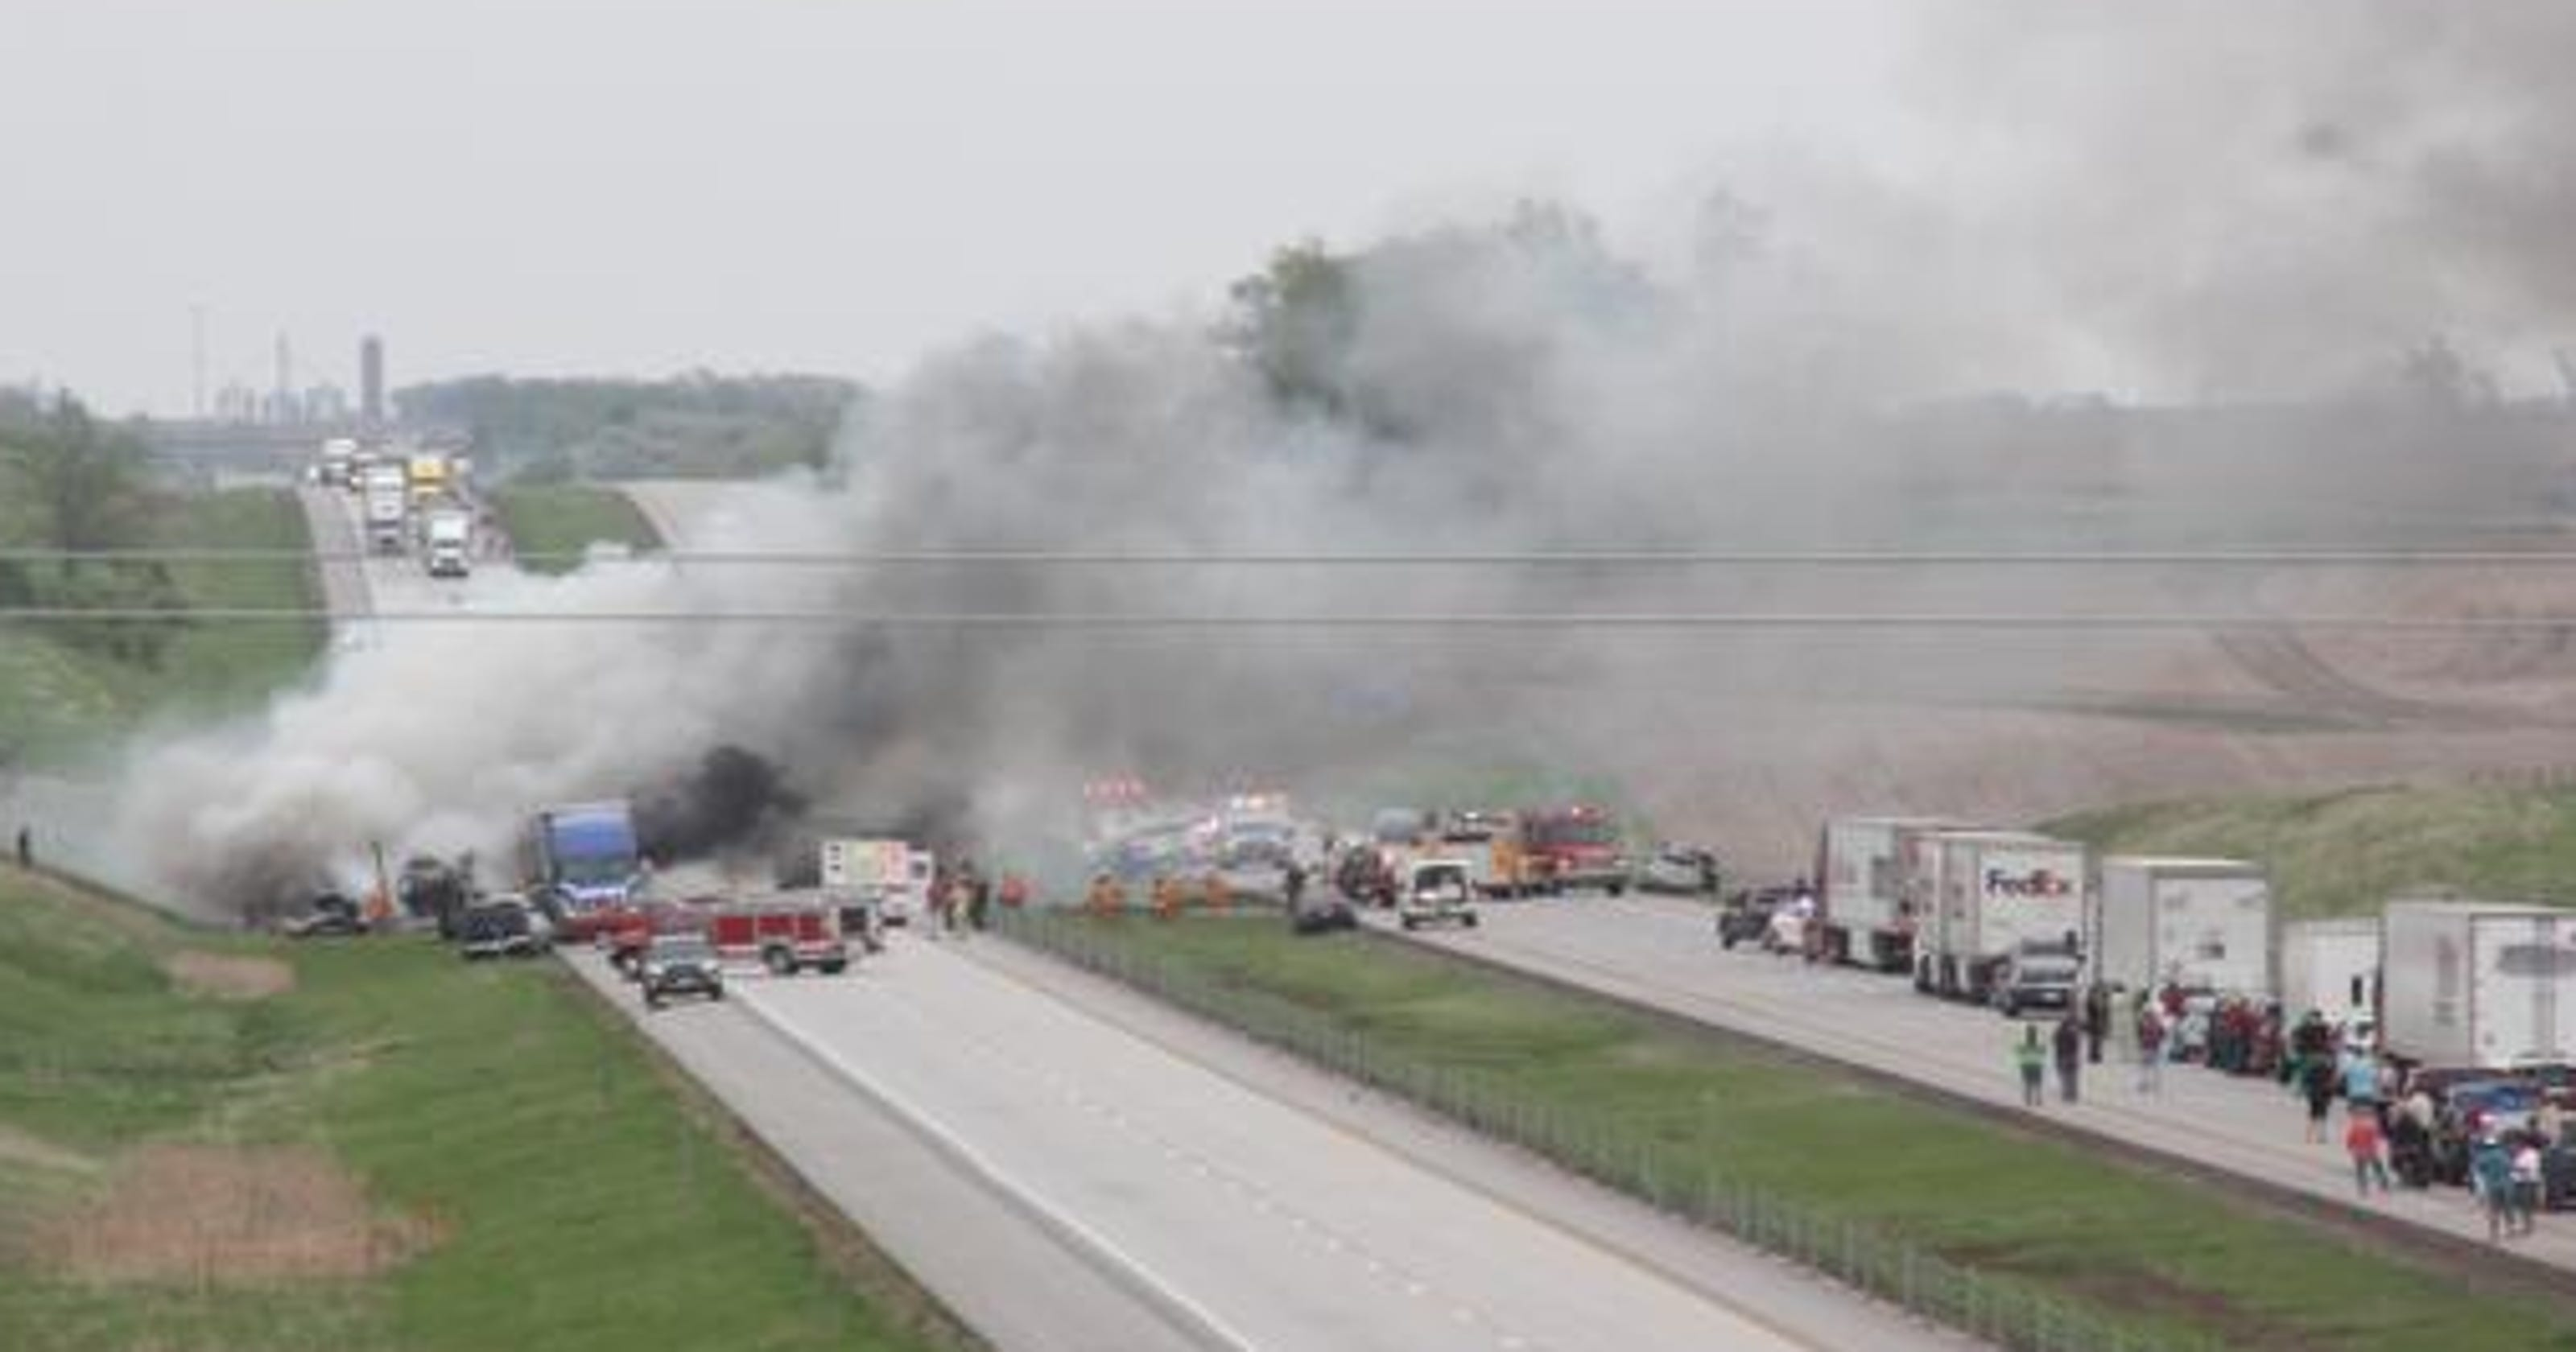 Iowa officials: Up to 30 injured in I-80 crashes